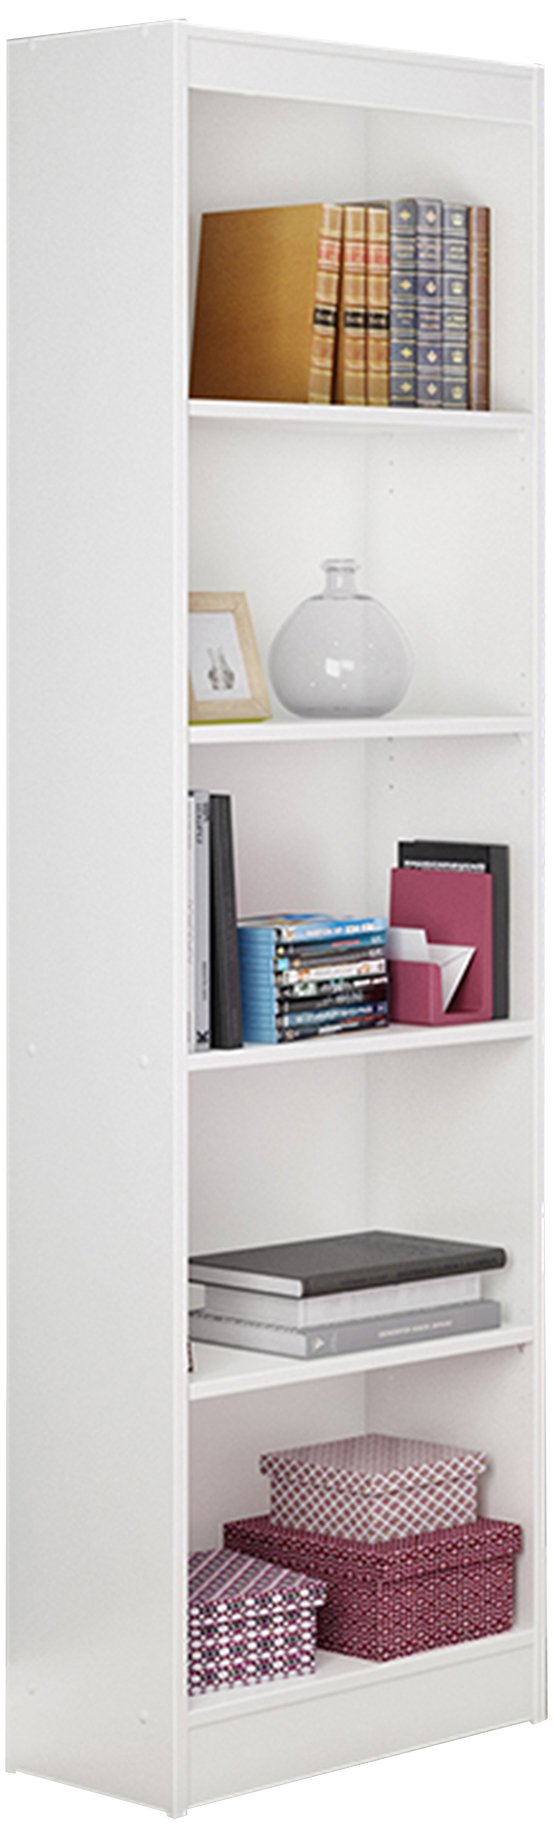 South Shore Jazz 5-Tier Open Narrow Bookcase, 72-Inch, White